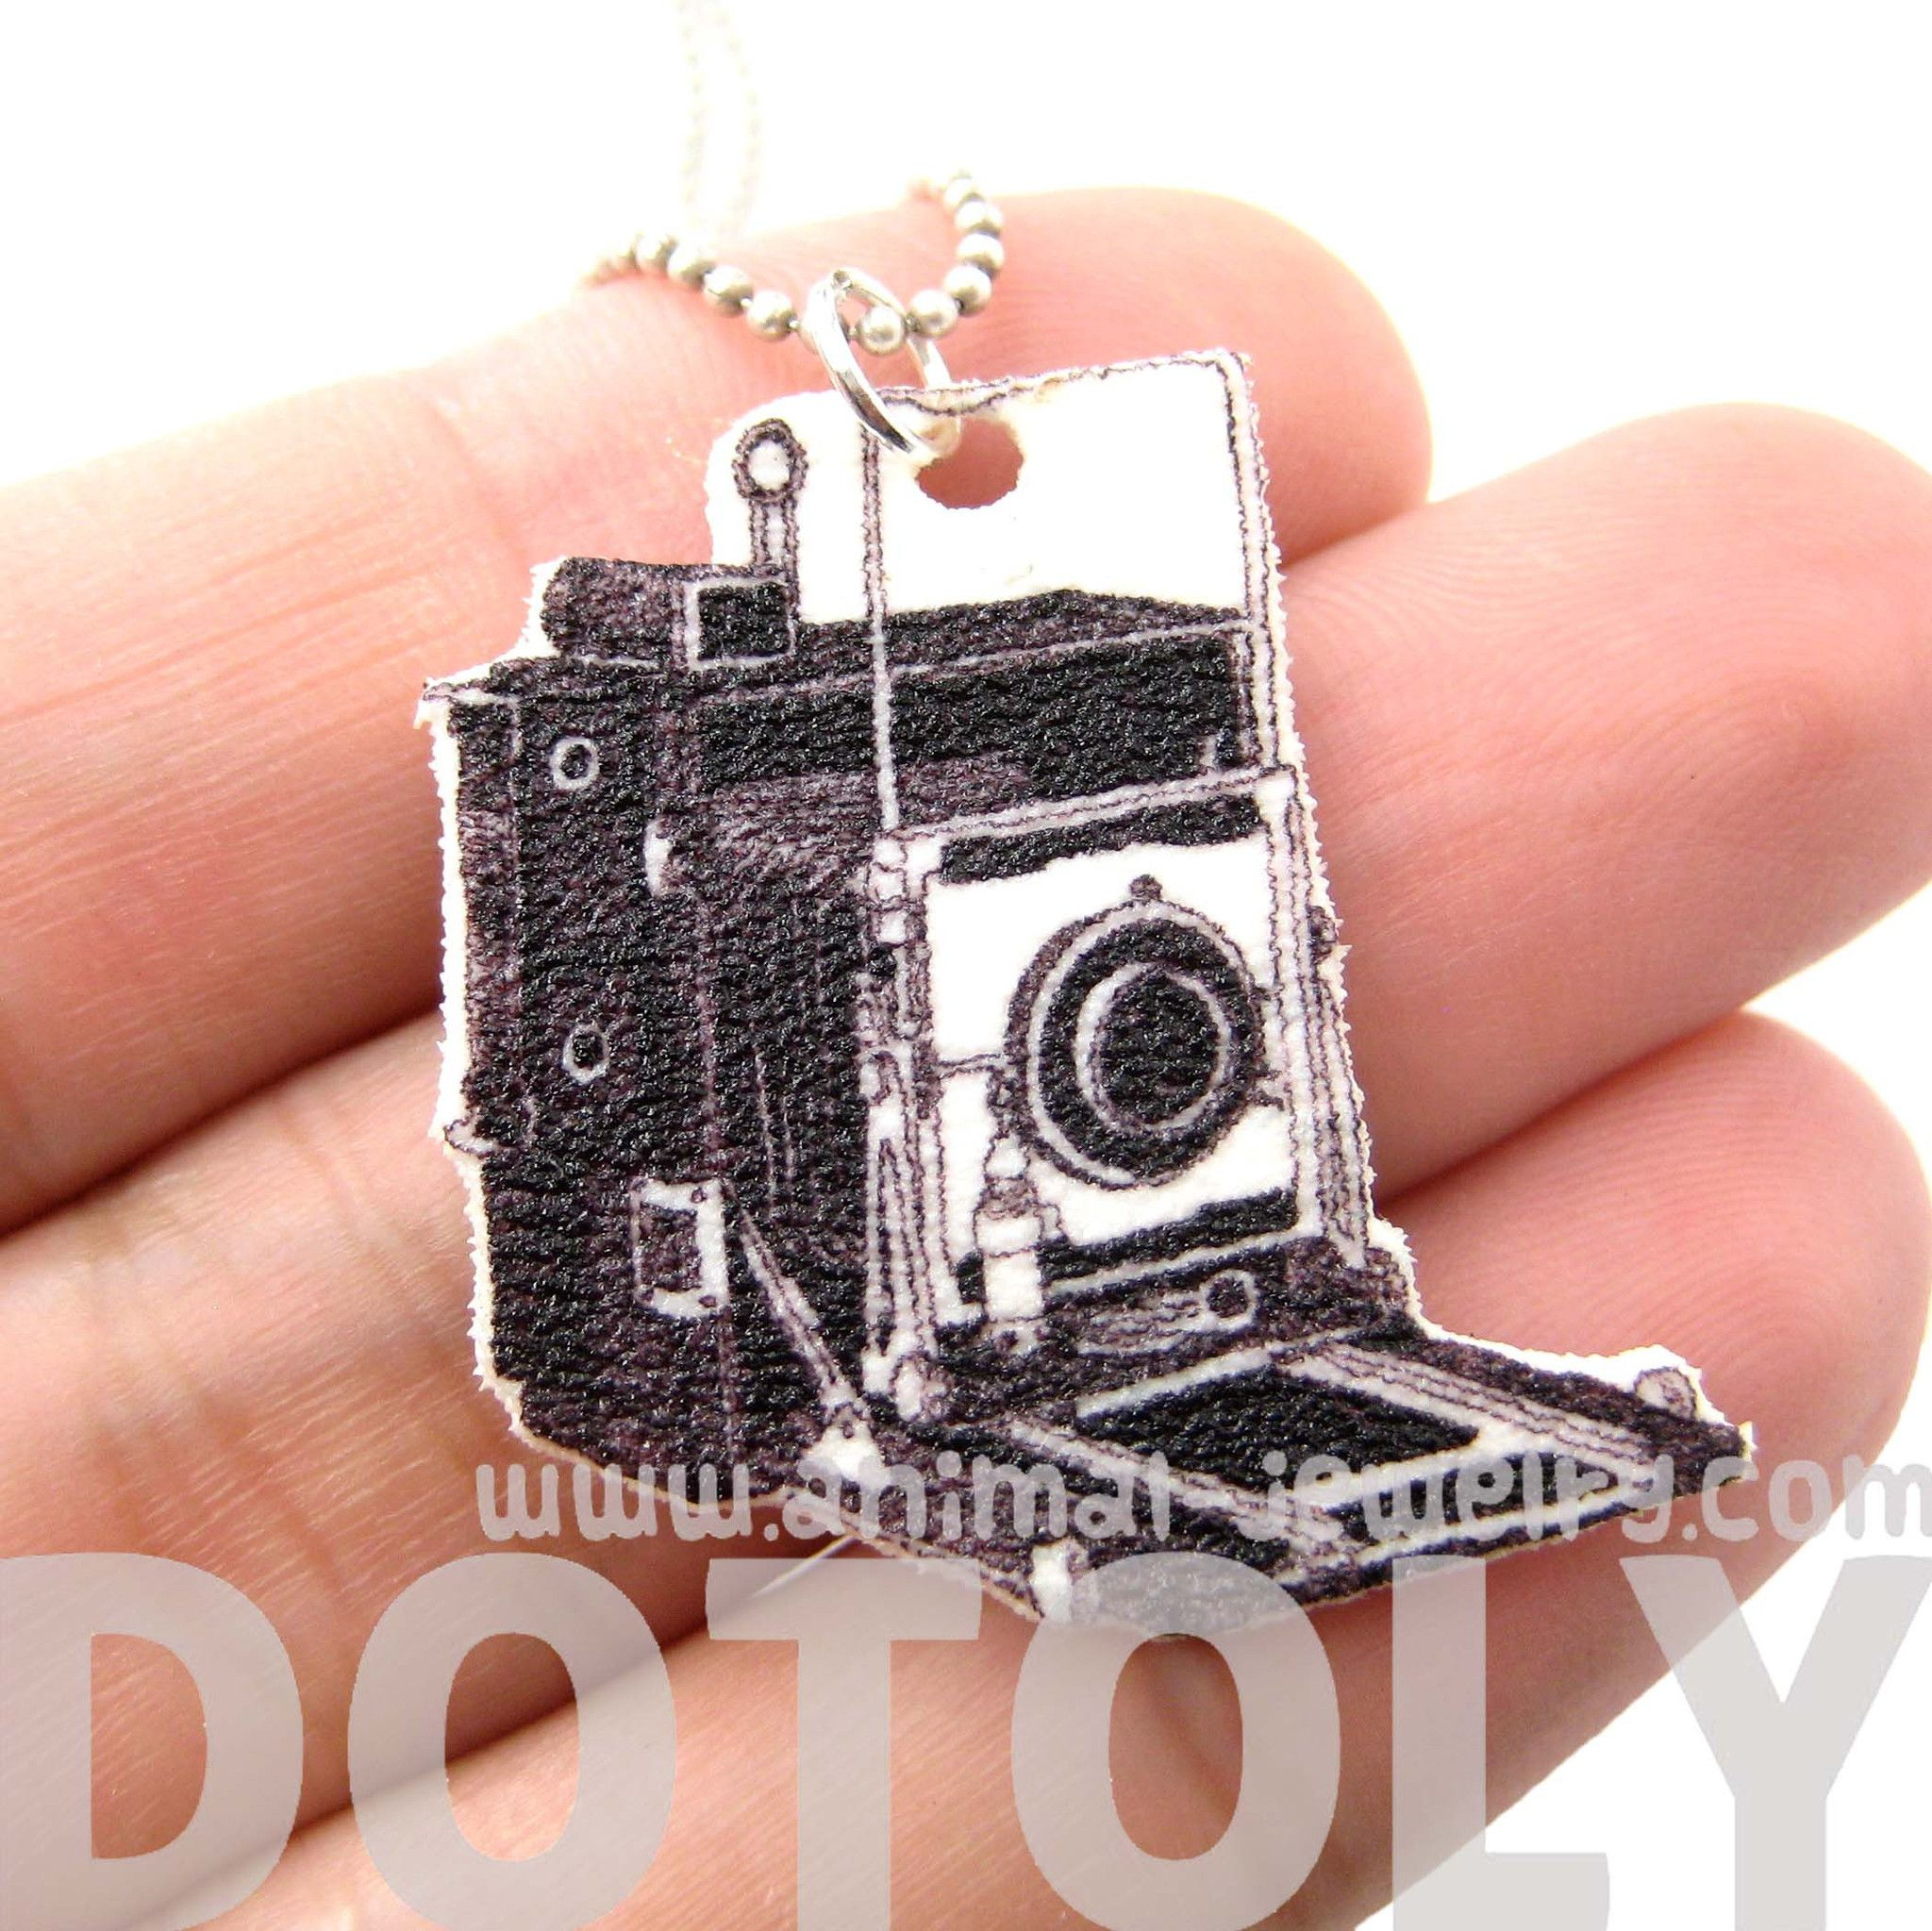 Vintage Camera Shaped Hand Drawn Pendant Necklace | Handmade